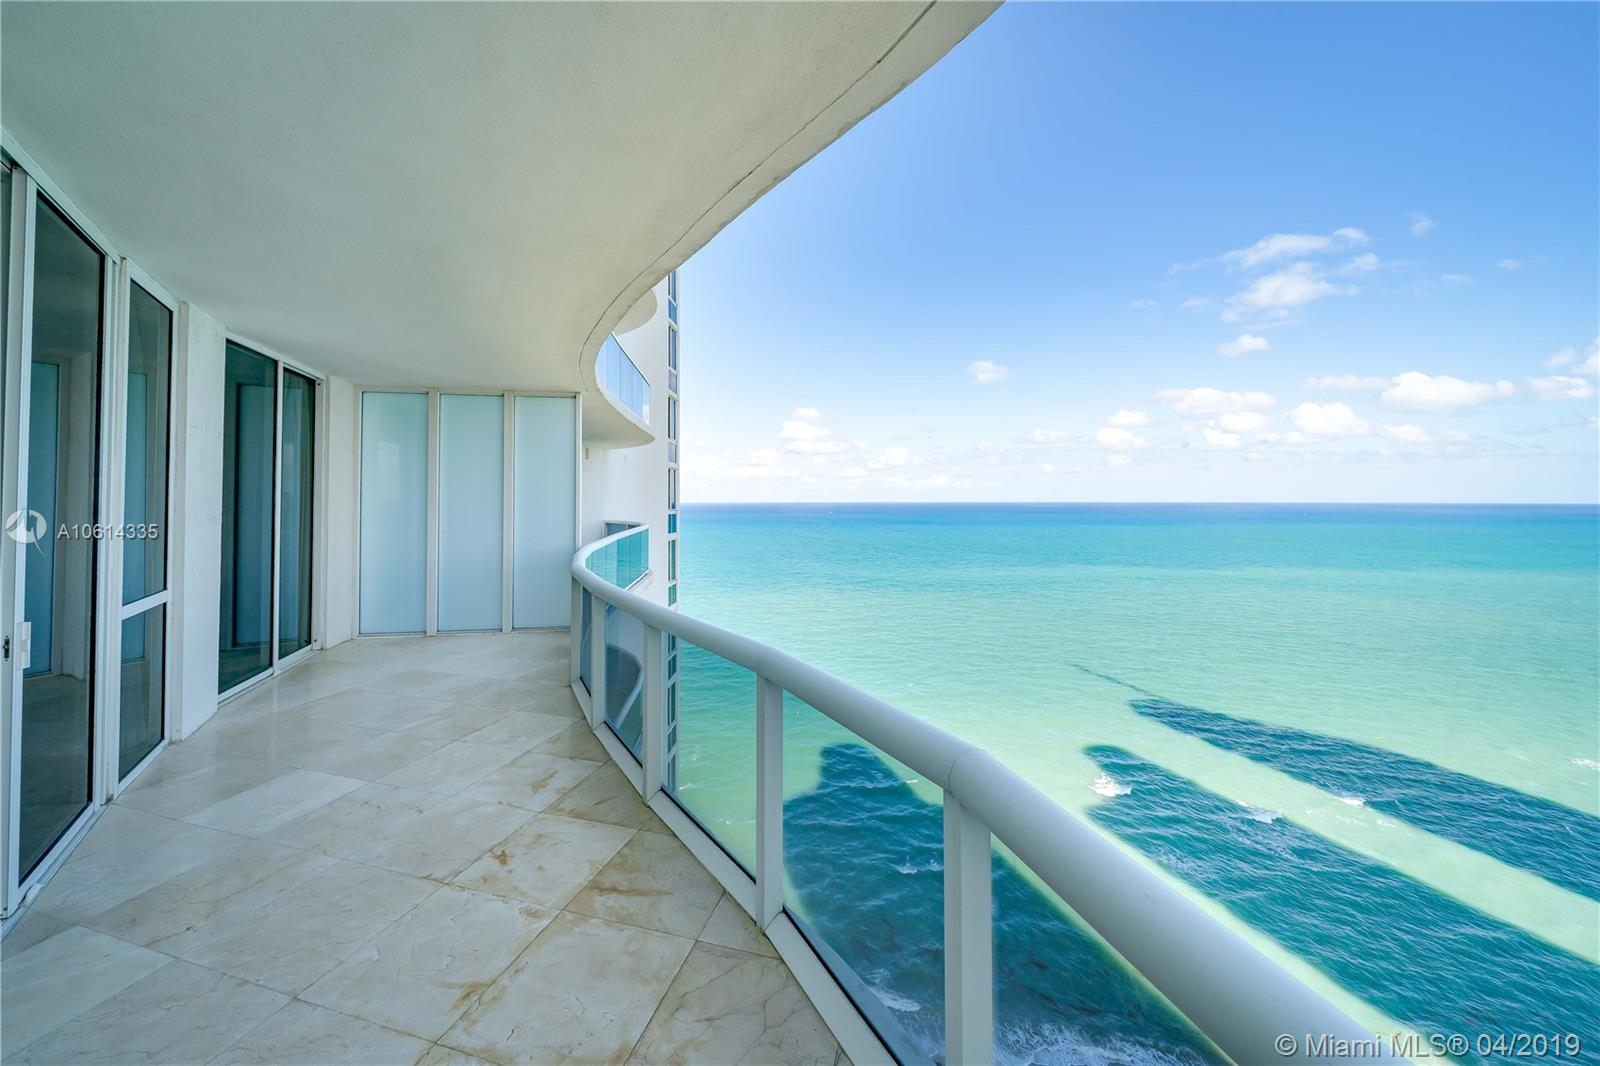 Wow! Enter this spectacular Oceanfront residence from private elevator foyer and immediately + throughout see the fantastic SE views of Direct Ocean, Intracoastal, and City Views. 2 bedrooms + Convertible Den with its bath. All bedrooms are ensuites  This was a 2nd home and rarely used. Views from every room through floor to ceiling windows, 10-11 ft ceilings. Open kitchen w/ Italian cabinetry and Subzero/ Wolf appliances. Meticulously maintained and MOVE IN READY! Amenities include 7000 sq. ft Spa/ Fitness Center + Yoga Studio overlooking the ocean. Heated Pool, Beach side Concierge with chair and towel service = 5 star experience.  Across from Intracoastal Park! World famous shopping at Bal Harbour is just minutes away!